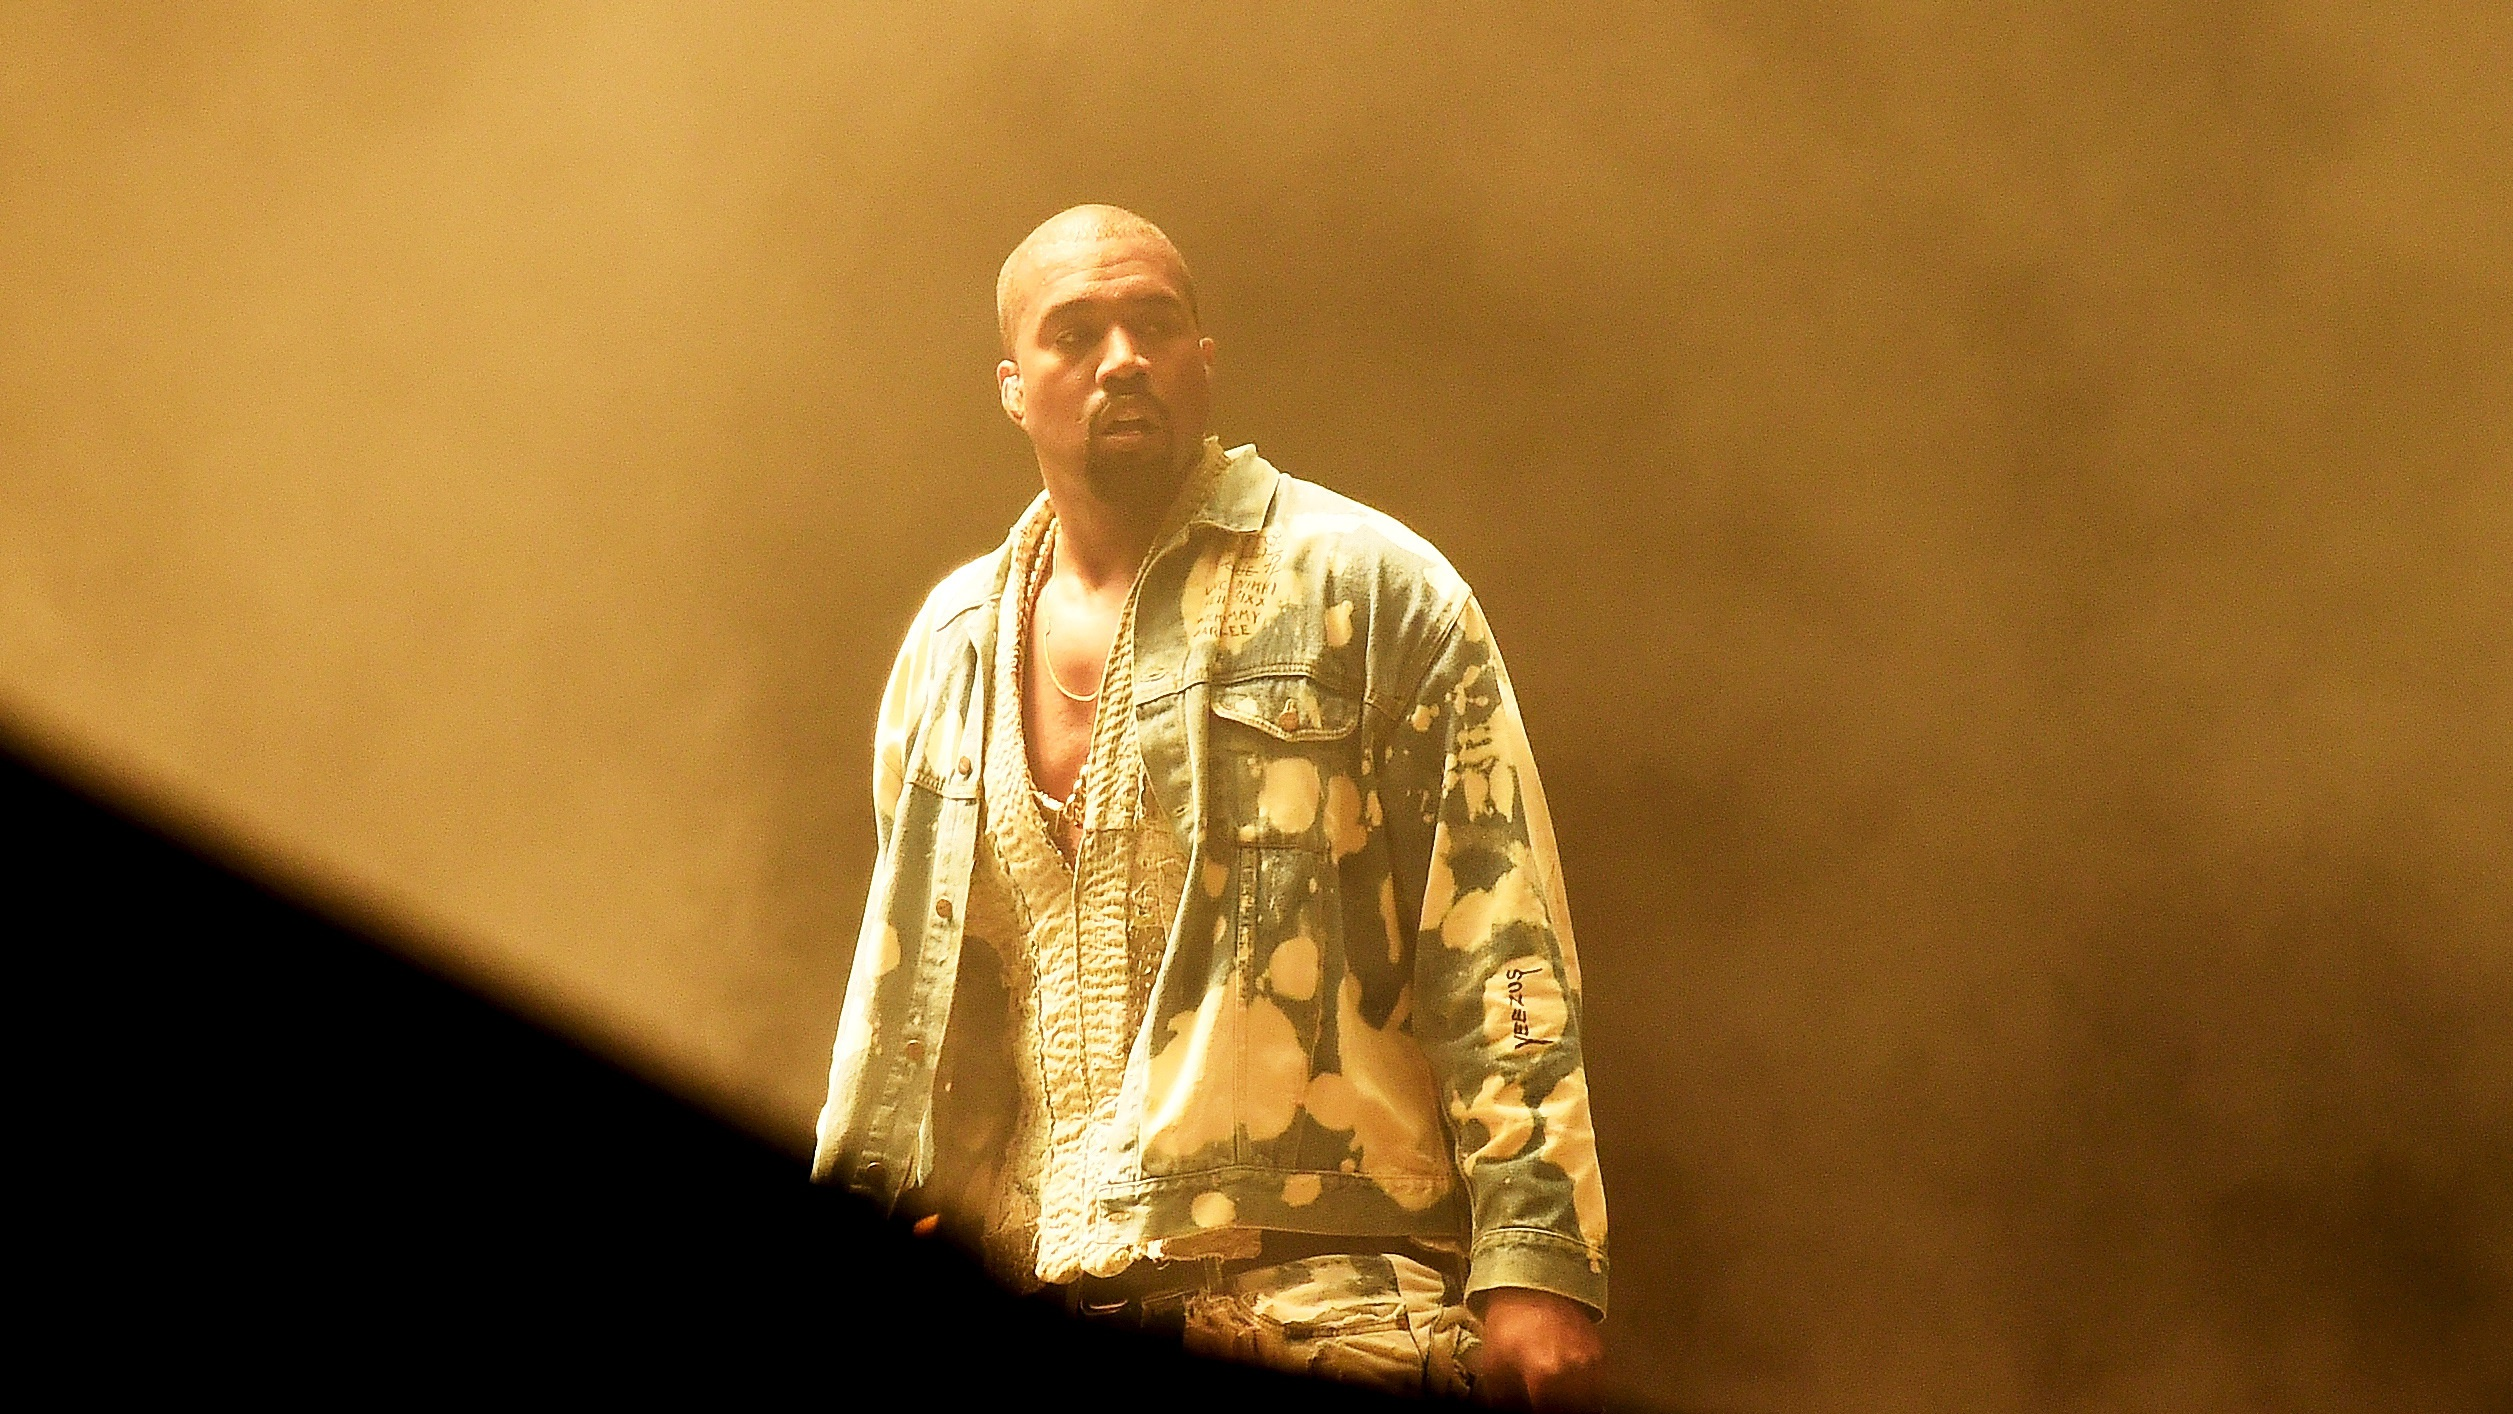 Kanye West performs on the Pyramid stage at Worthy Farm in Somerset during the Glastonbury Festival in Britain, June 27, 2015.